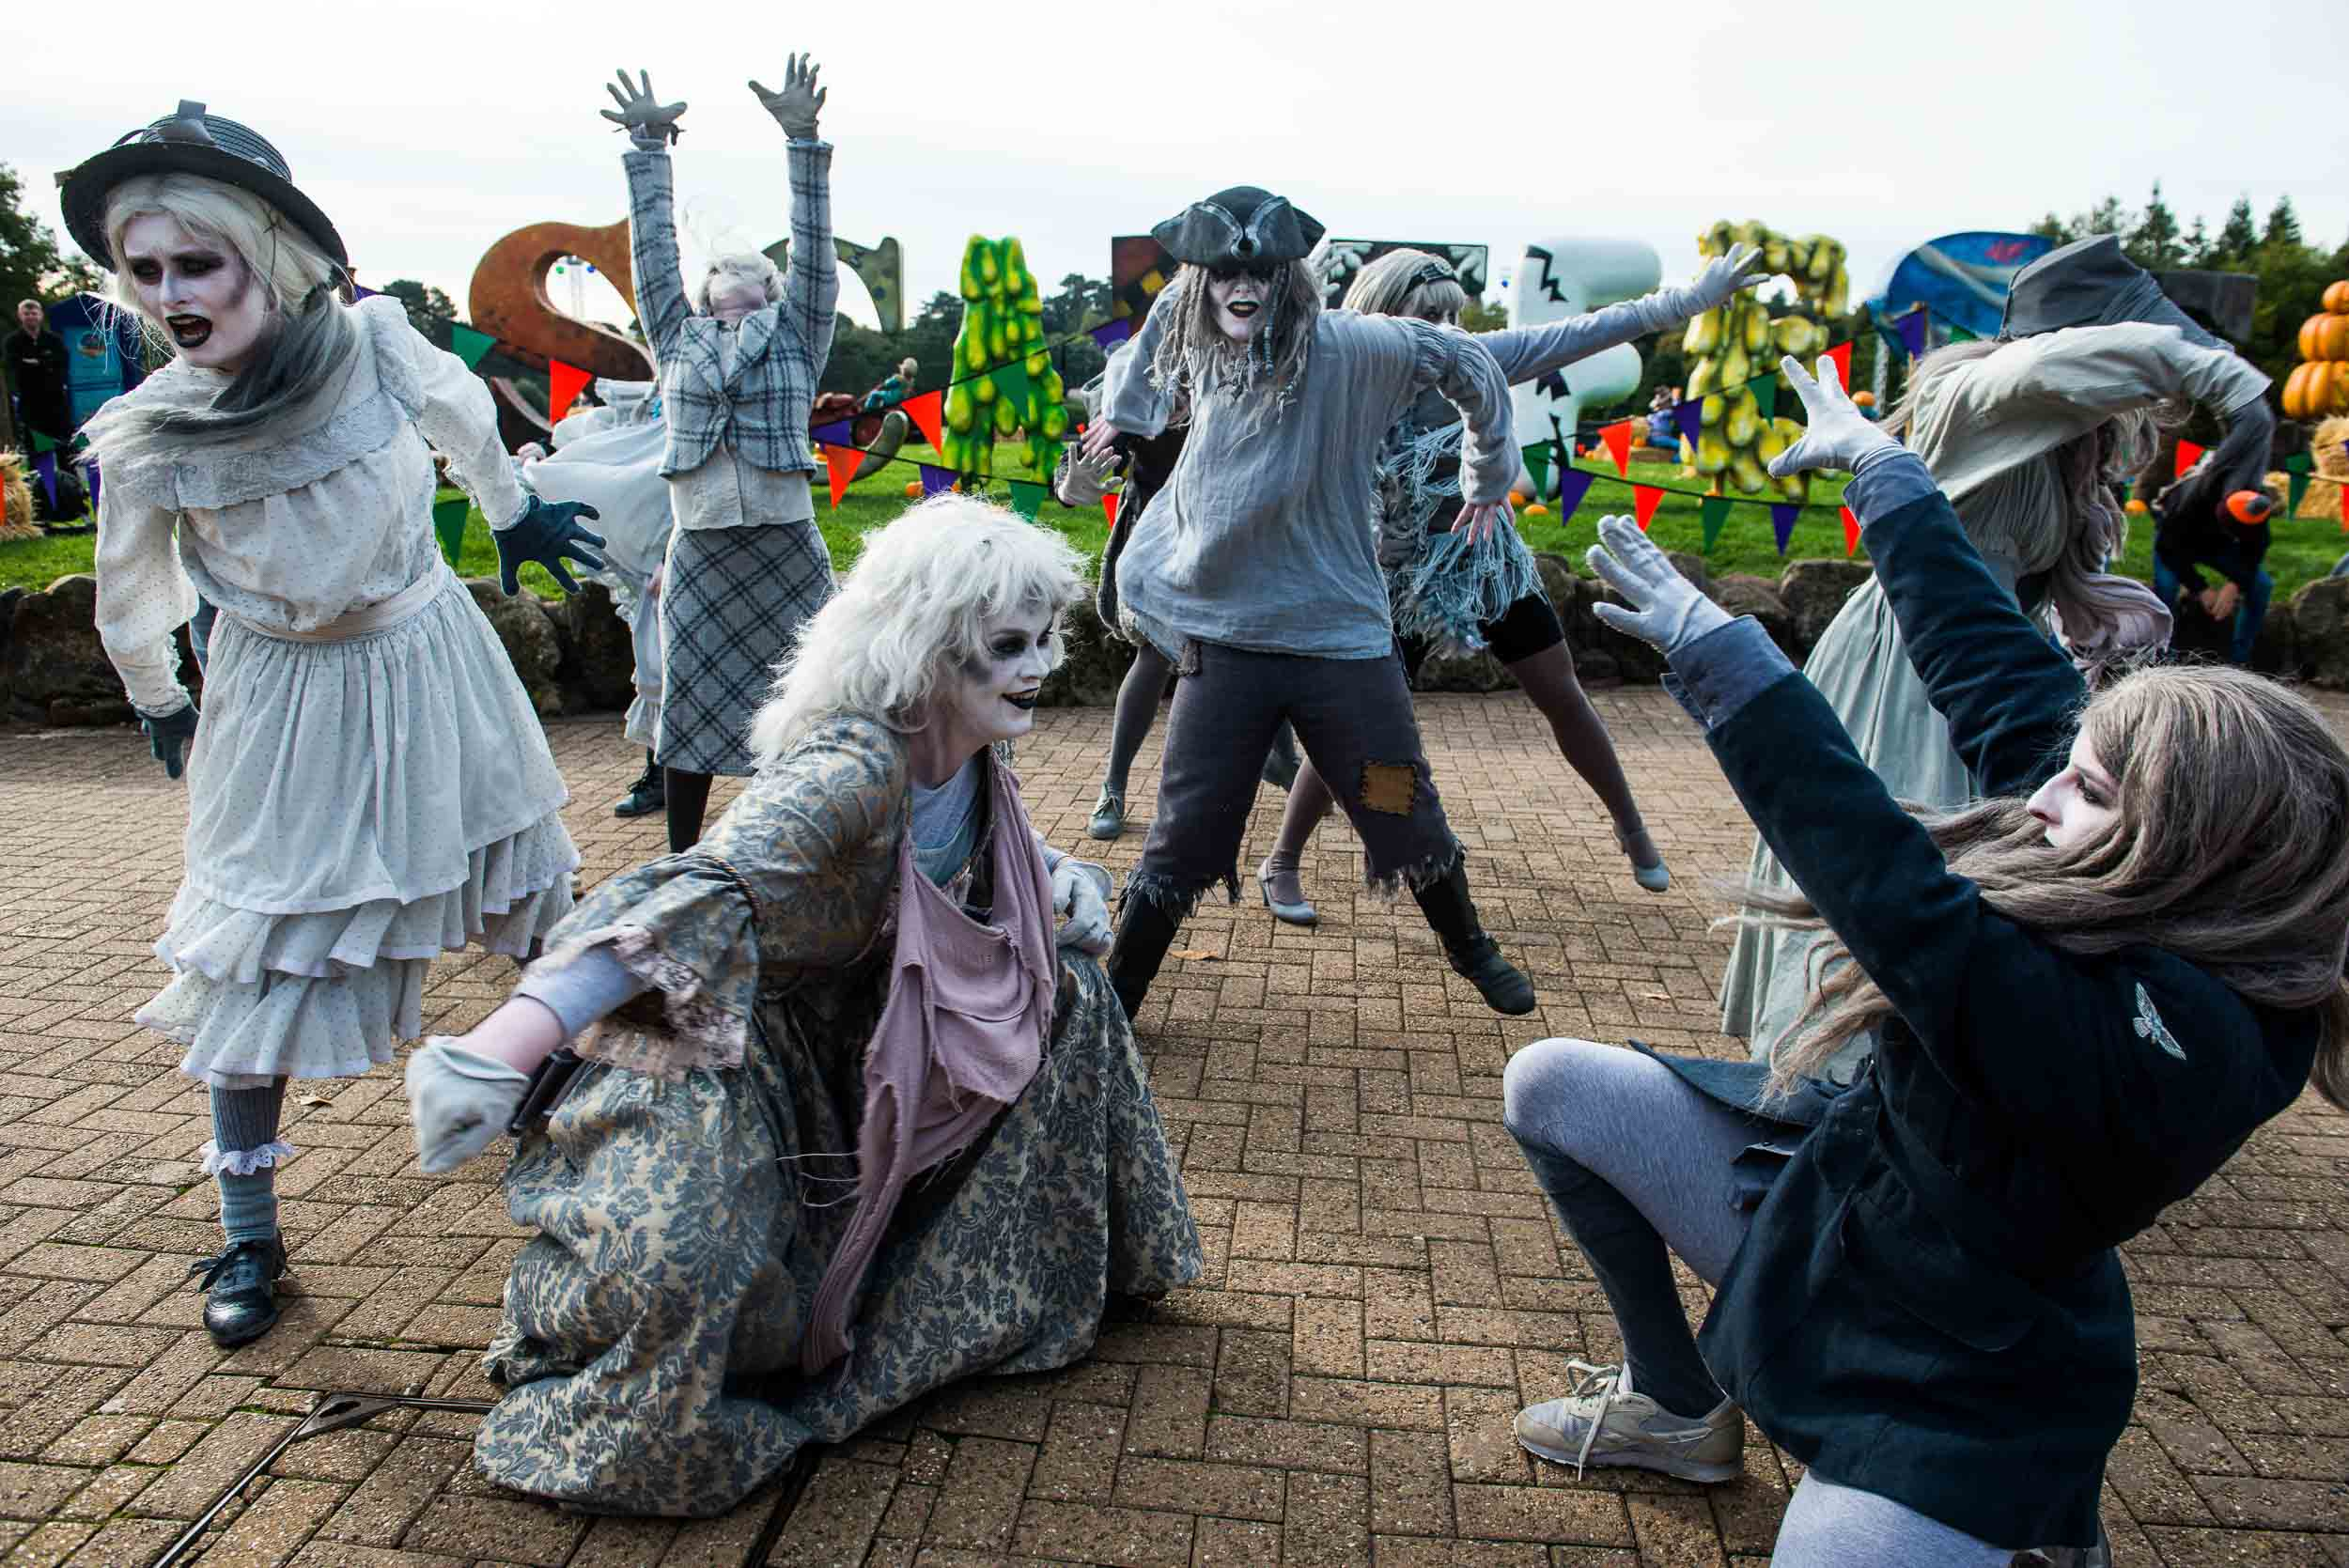 Alton Towers Scarefest Photography by ManchesterPhotographer.com